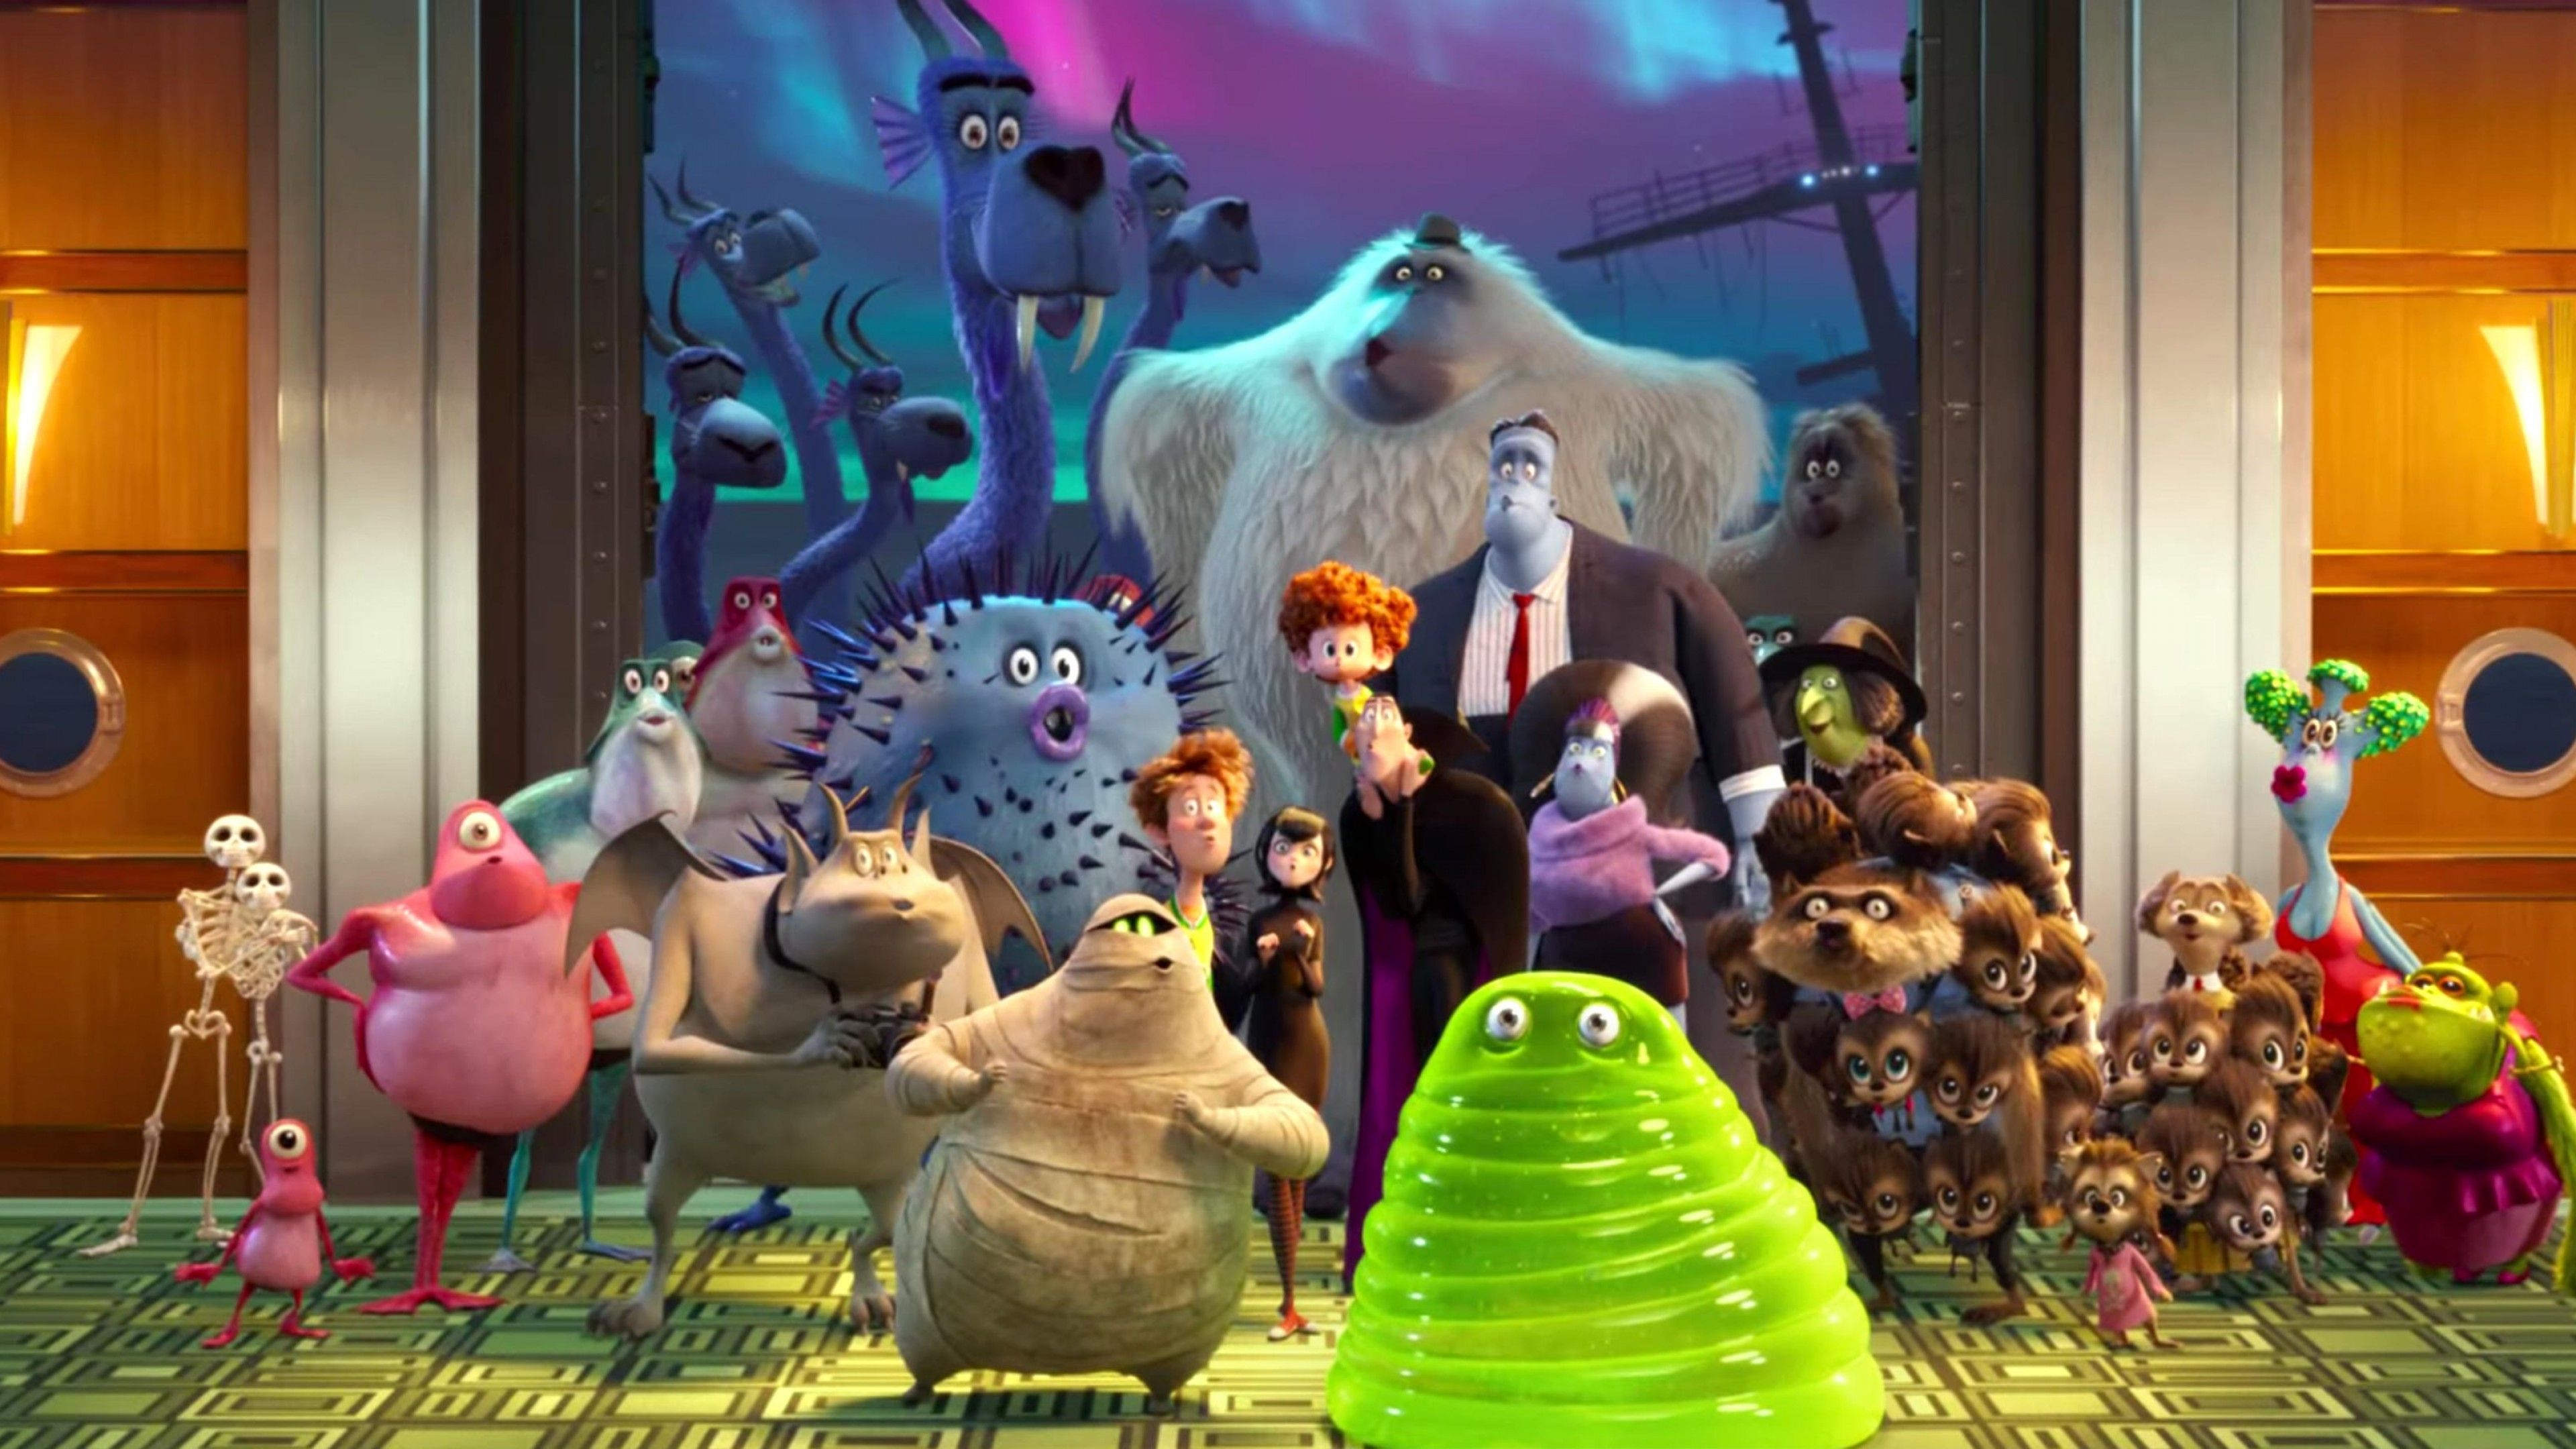 Wallpaper Hotel Transylvania 3 Summer Vacation 4k With Images